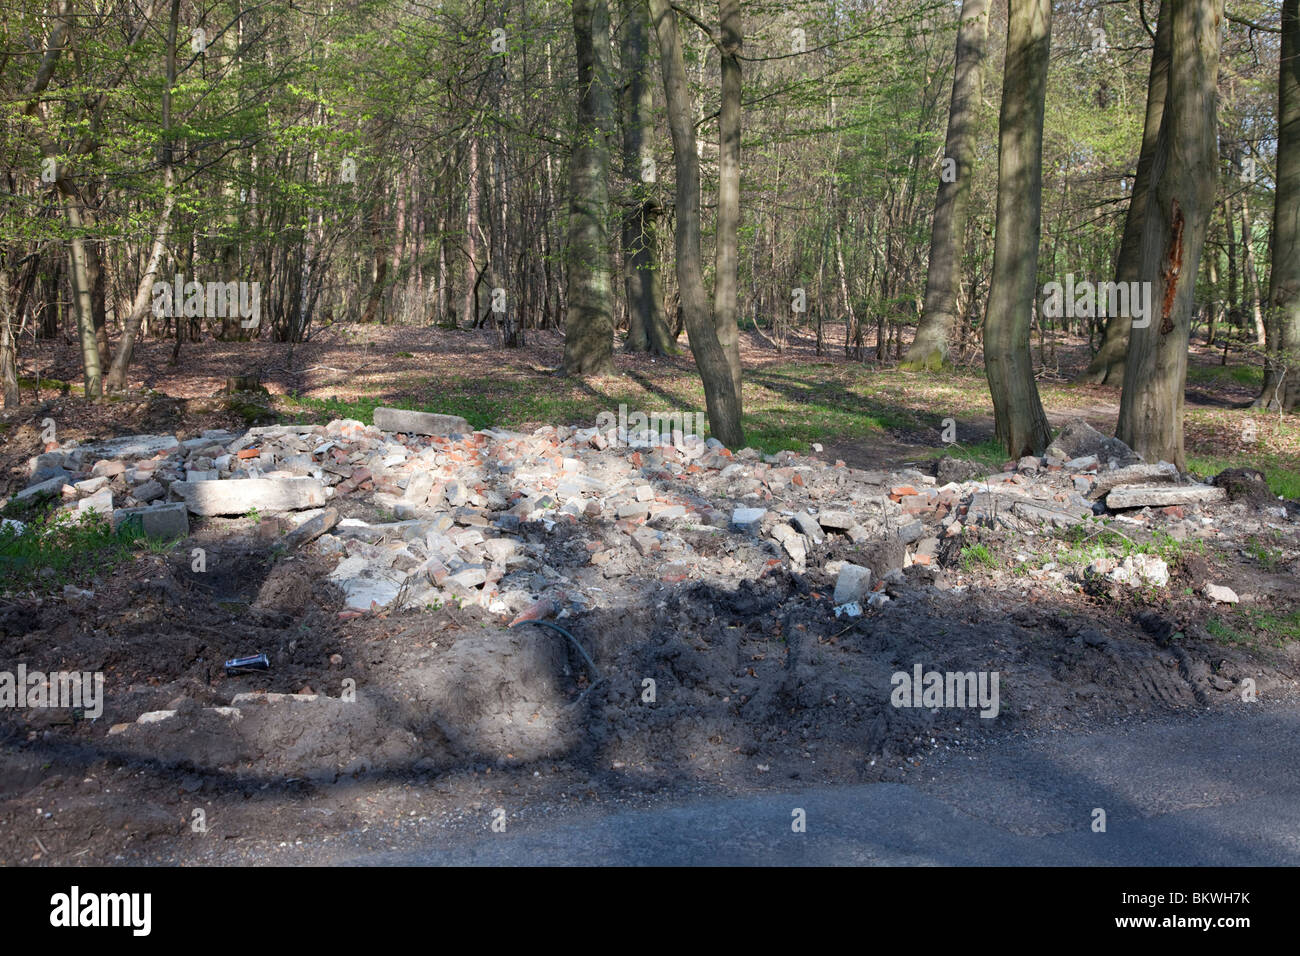 Fly-tipped builders rubble dumped illegally in woodland near Hyde Heath, Buckinghamshire - Stock Image